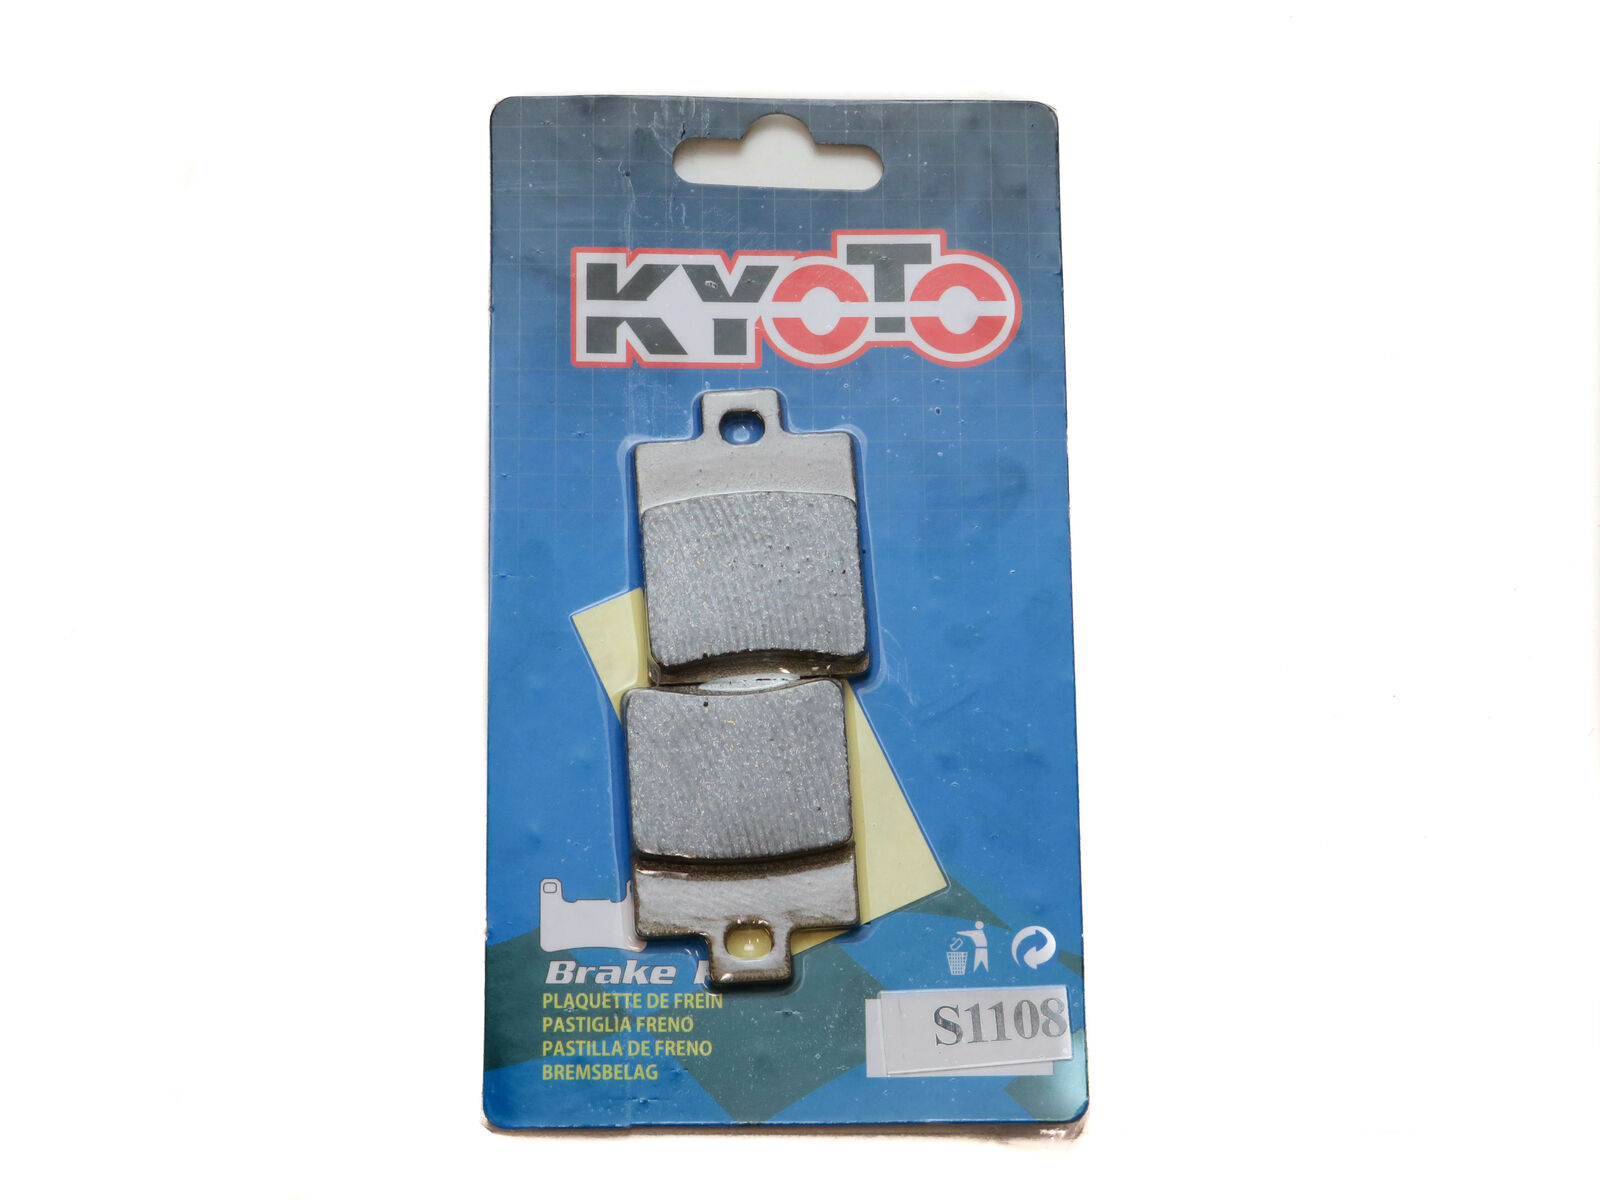 Rear Drum Model KYOTO FRONT  BRAKE PADS PIAGGIO NRG50 Extreme 1999-2001